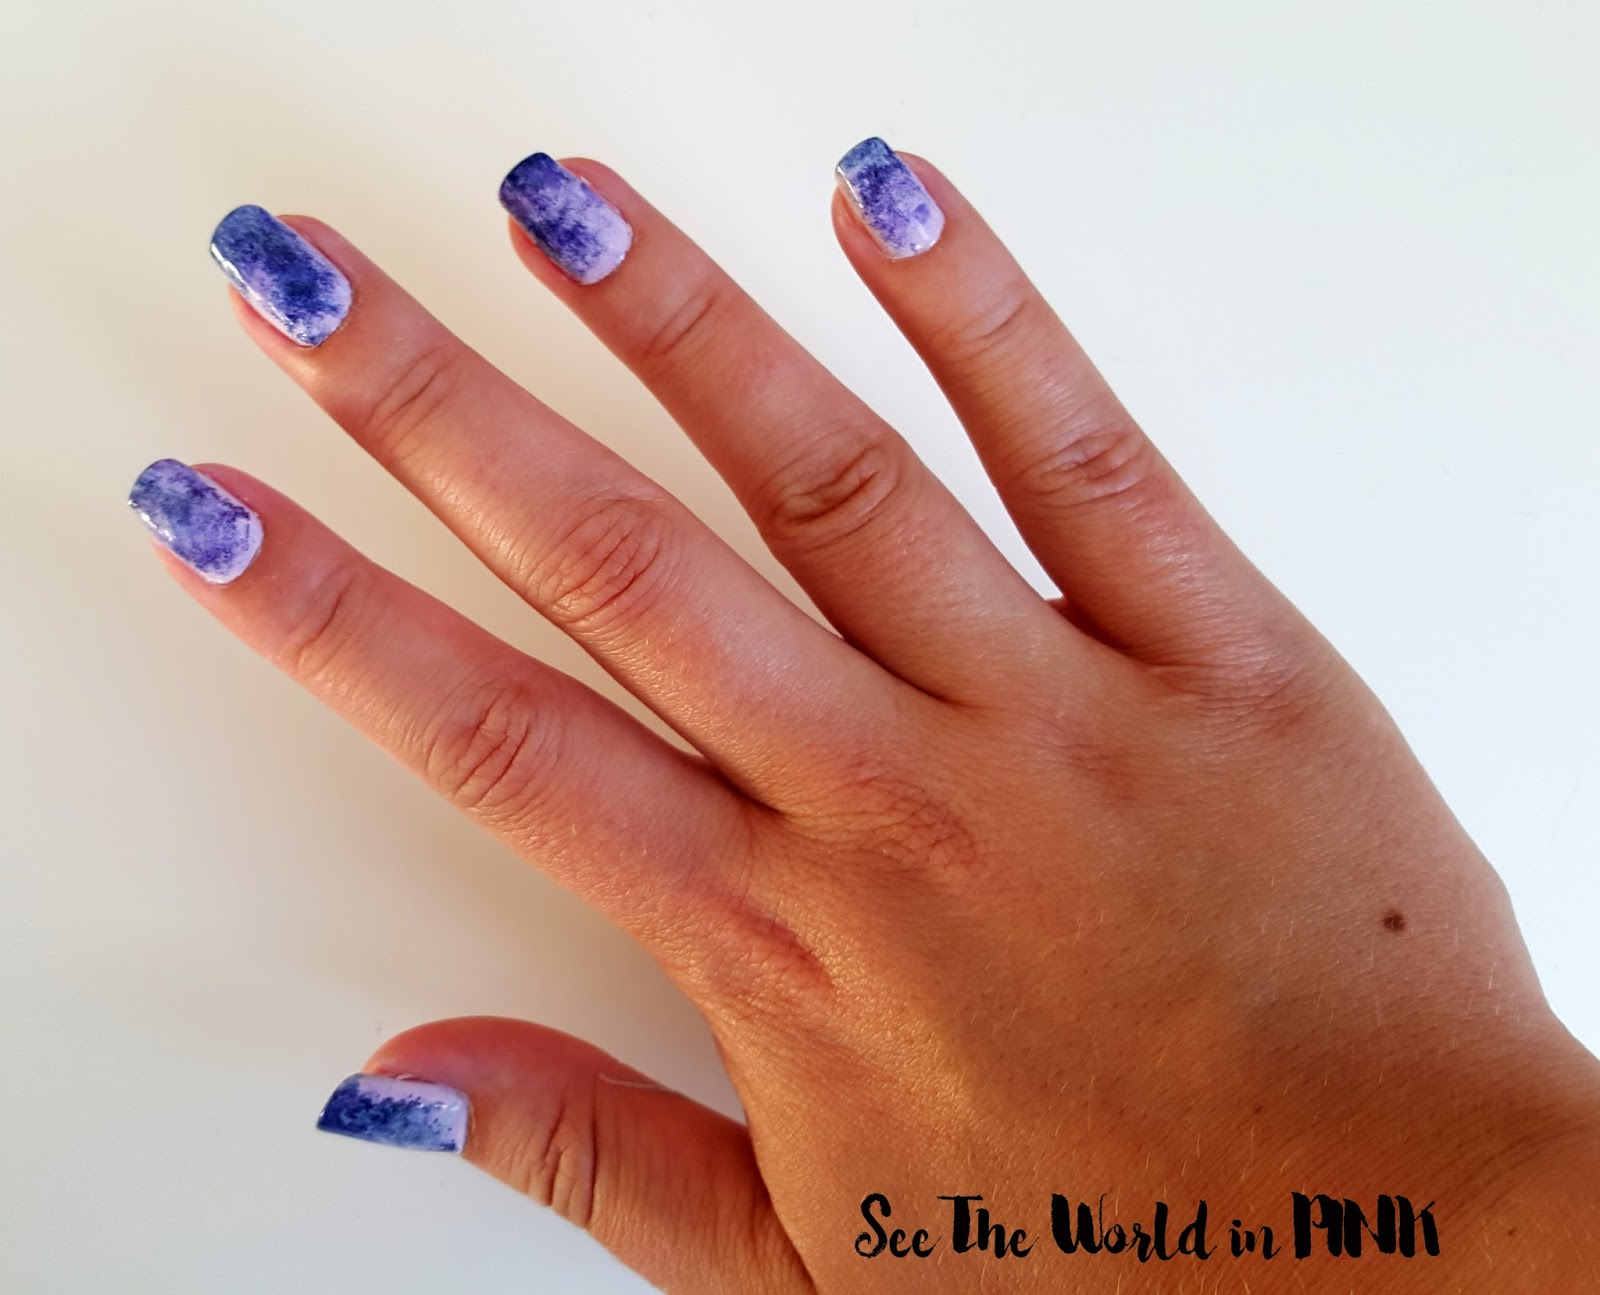 Manicure Monday - Purple Sponge Nails!